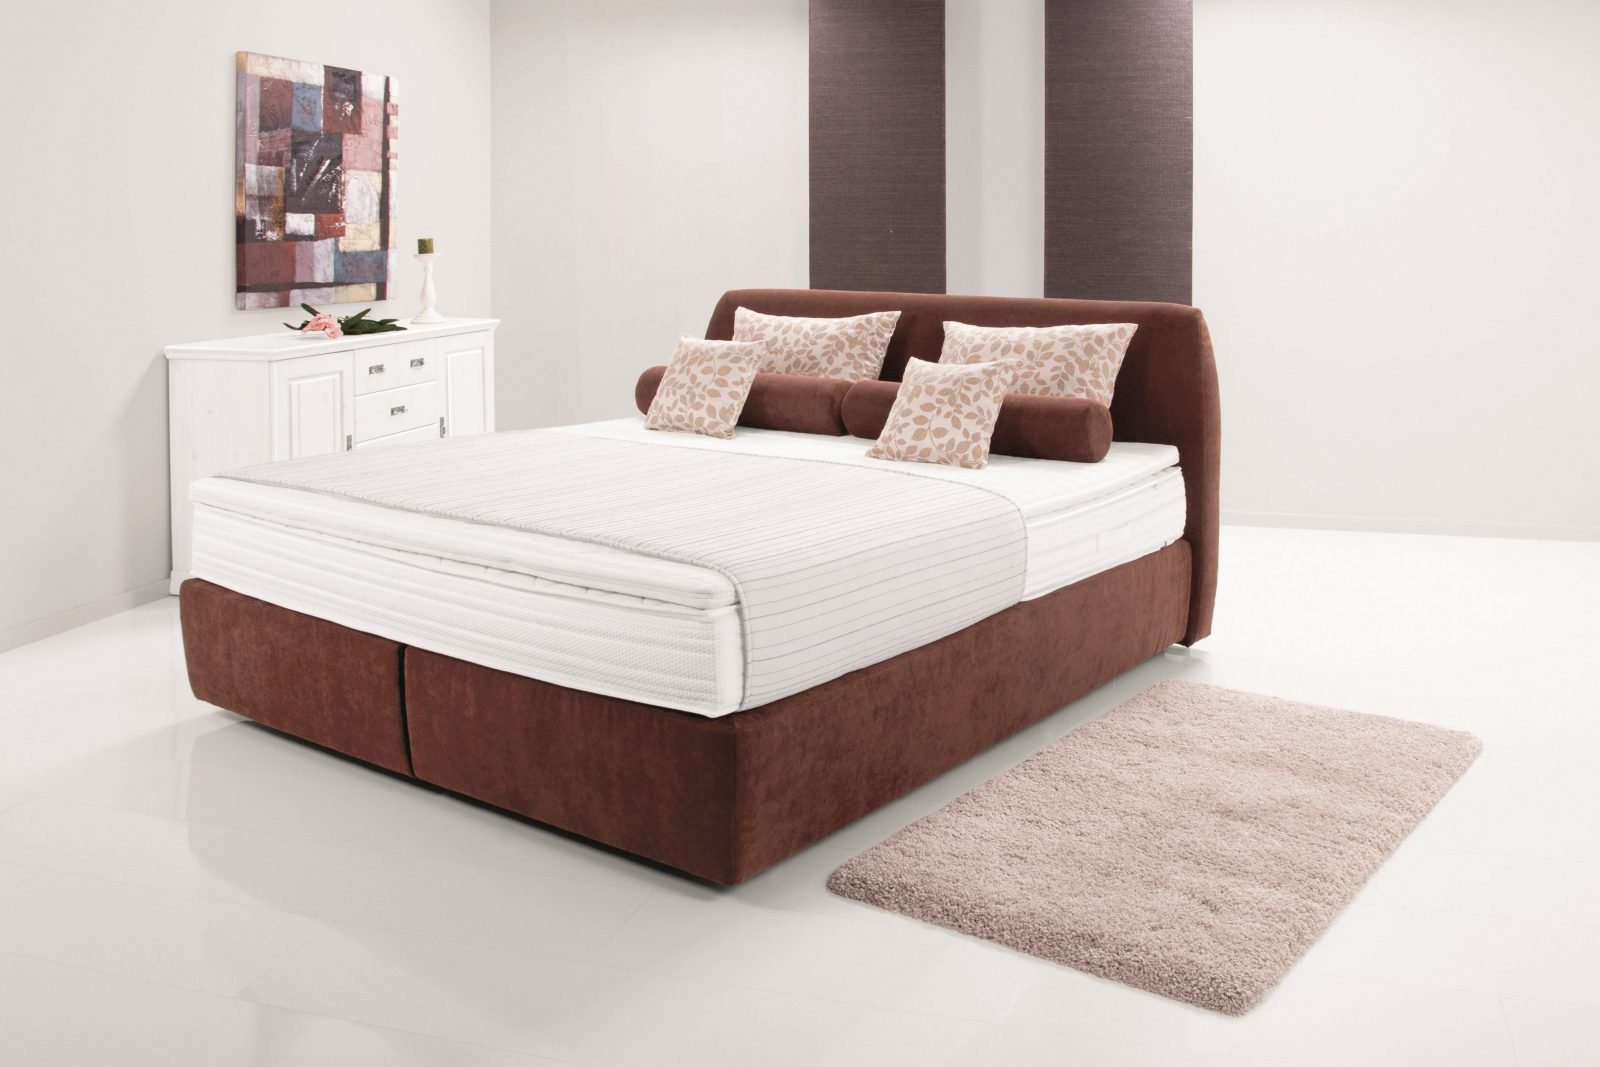 boxspring bett 160x220 hasena boxspring bett classic with boxspring von bett 160 x 220 bild. Black Bedroom Furniture Sets. Home Design Ideas